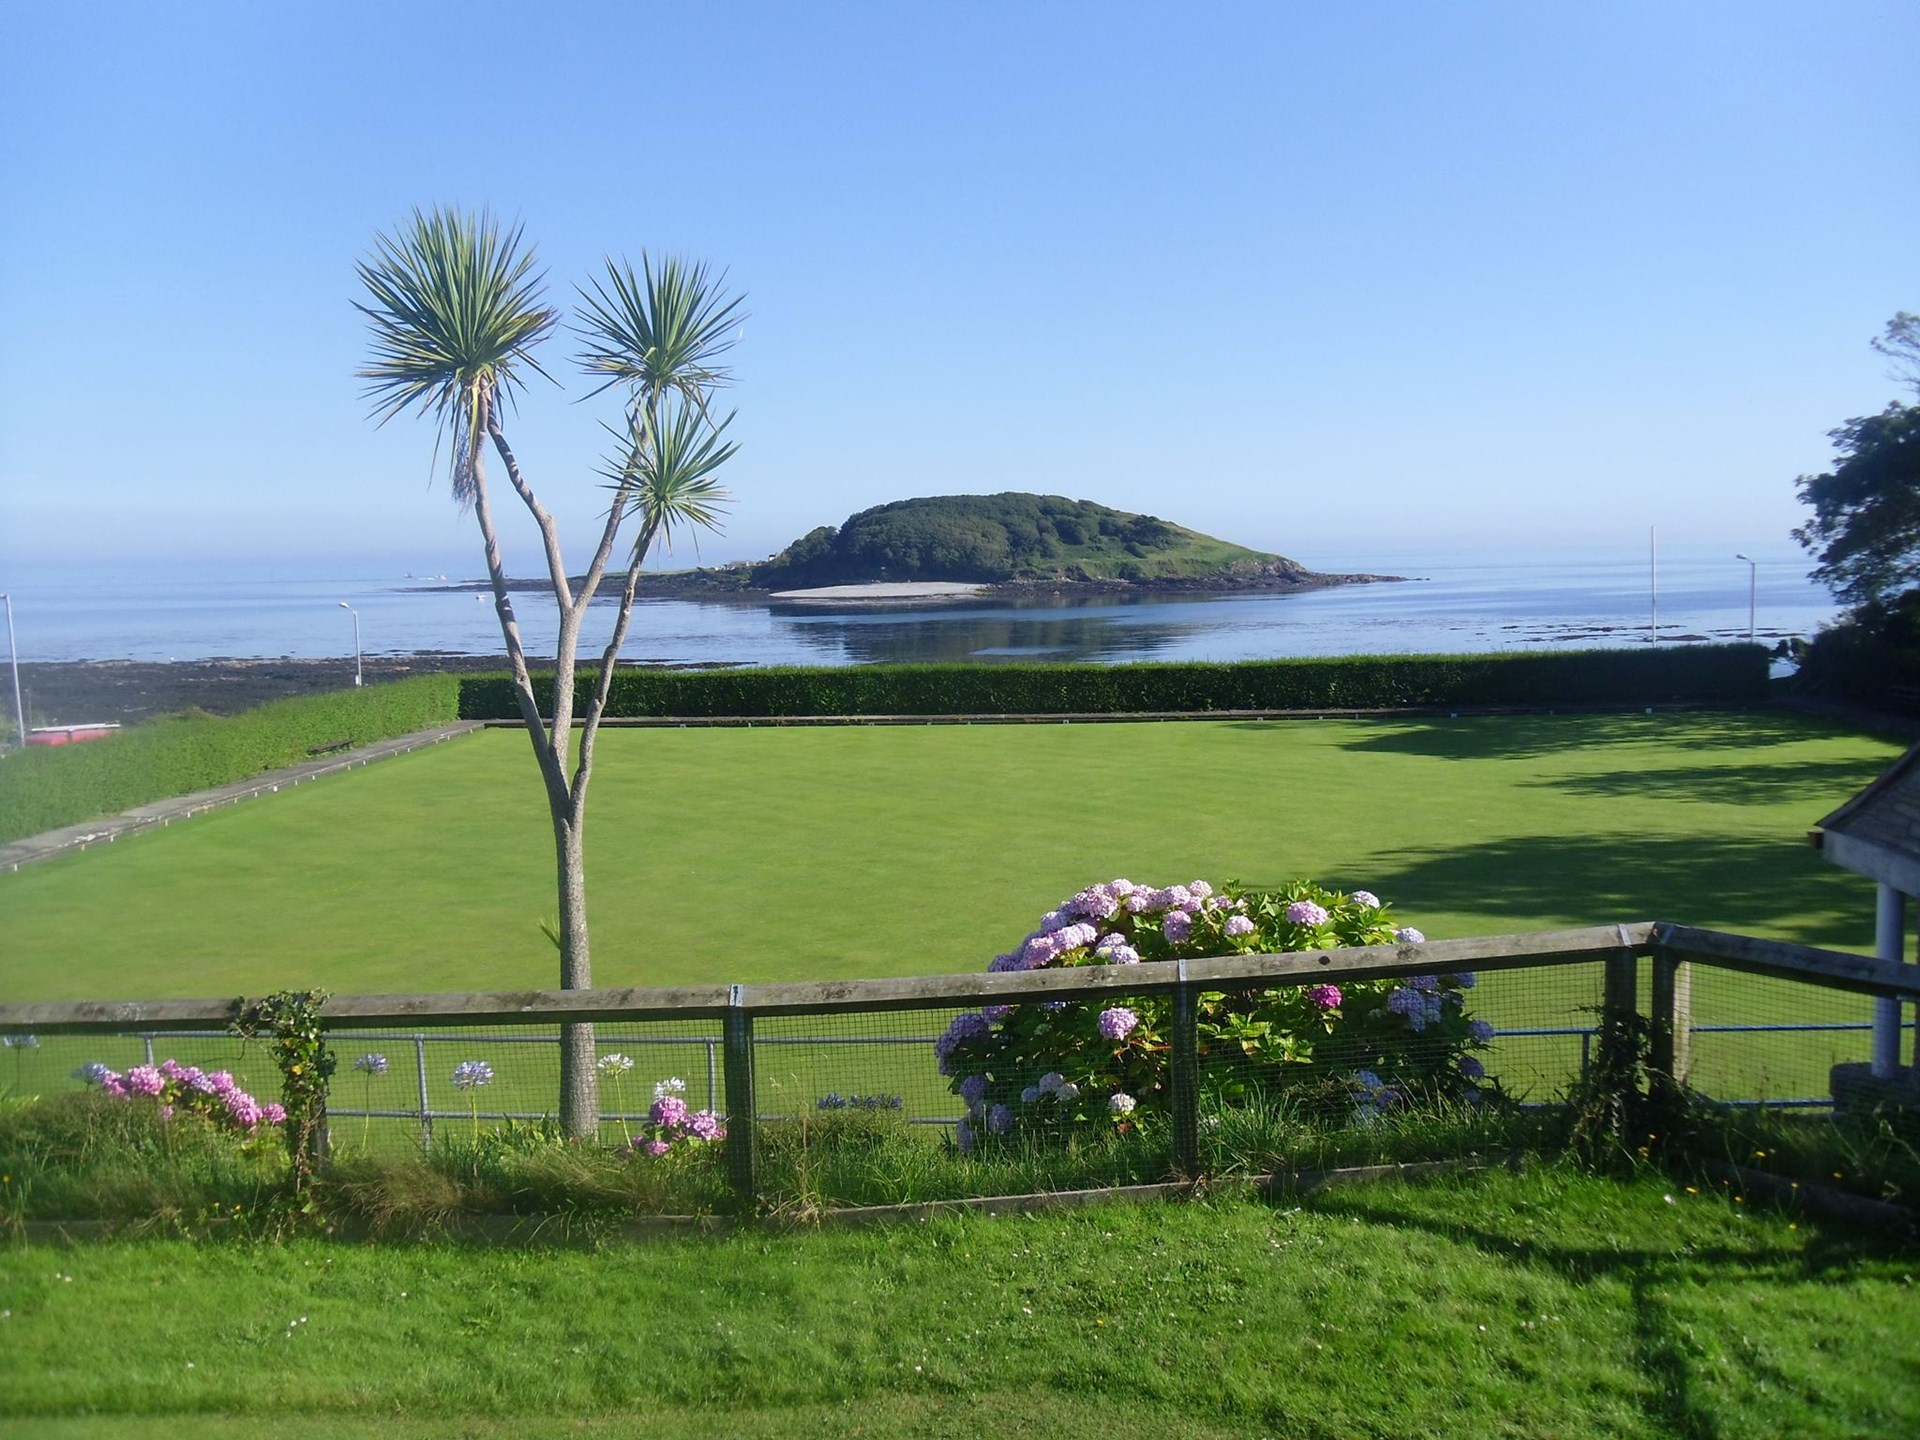 View from Looe Bowls Club of Looe island